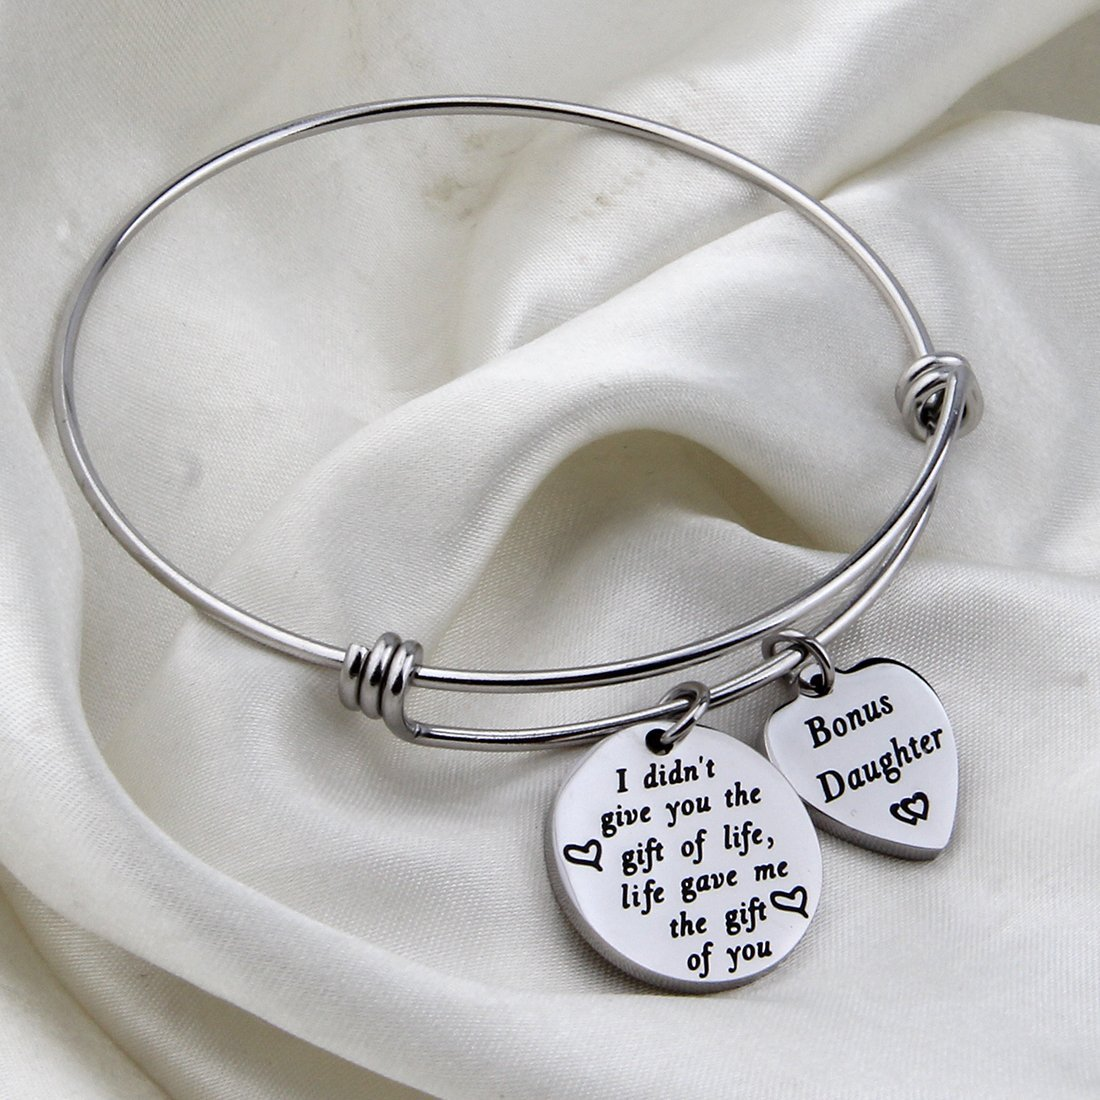 HOLLP Stepdaughter Bracelet Bonus Daughter Jewelry Daughter in Law Gift I Didnt Give You The Gift of Life Life Gave Me The Gift of You Bracelt Stepdaughter